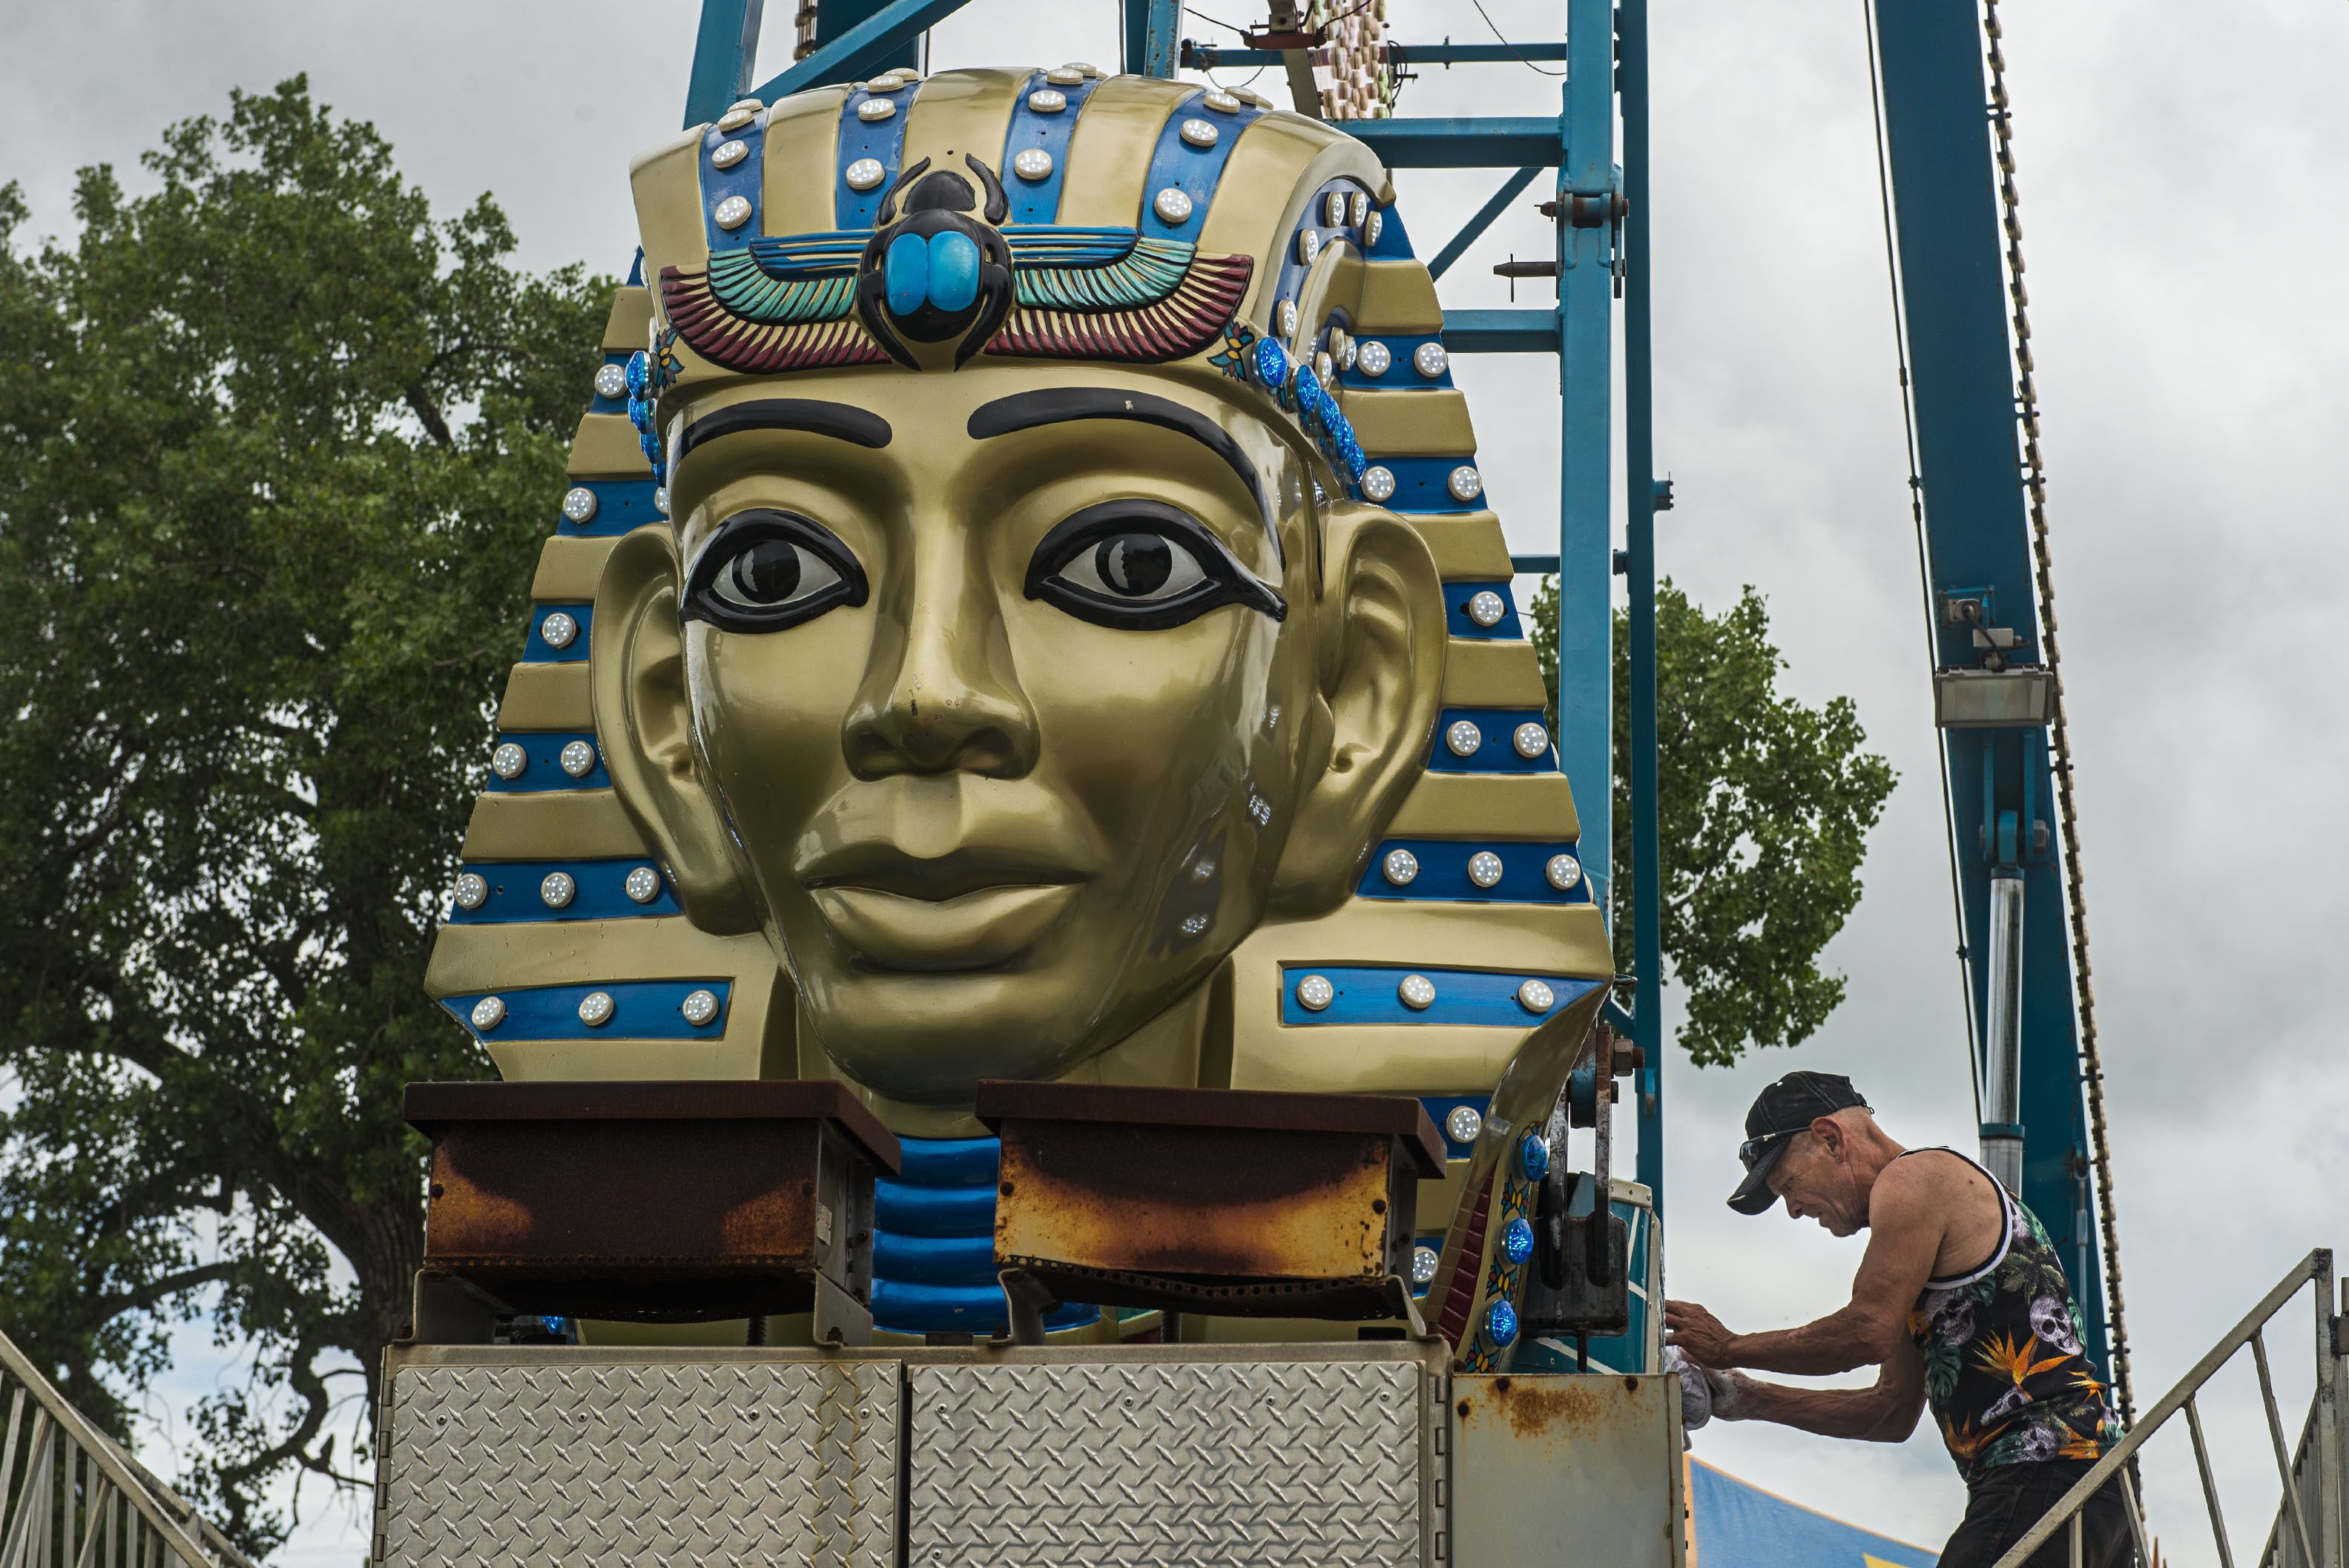 Pharoah's Fury gets a scrub down Tuesday afternoon ahead of the opening on Thursday in DIxon.